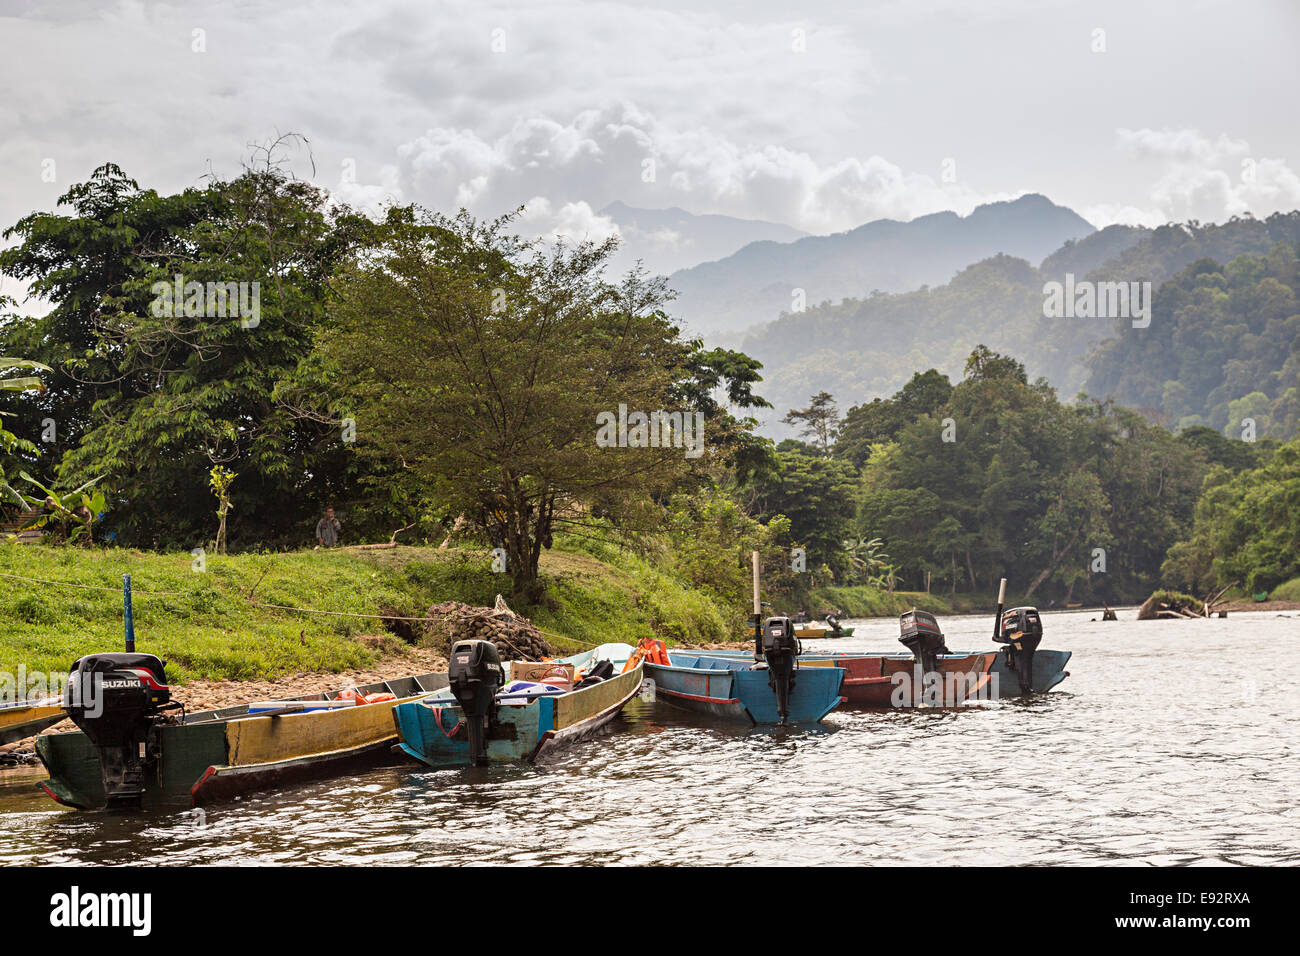 Boats with outboard motors on the river Melinau with rainforest and mountains in distance, Mulu, Malaysia - Stock Image